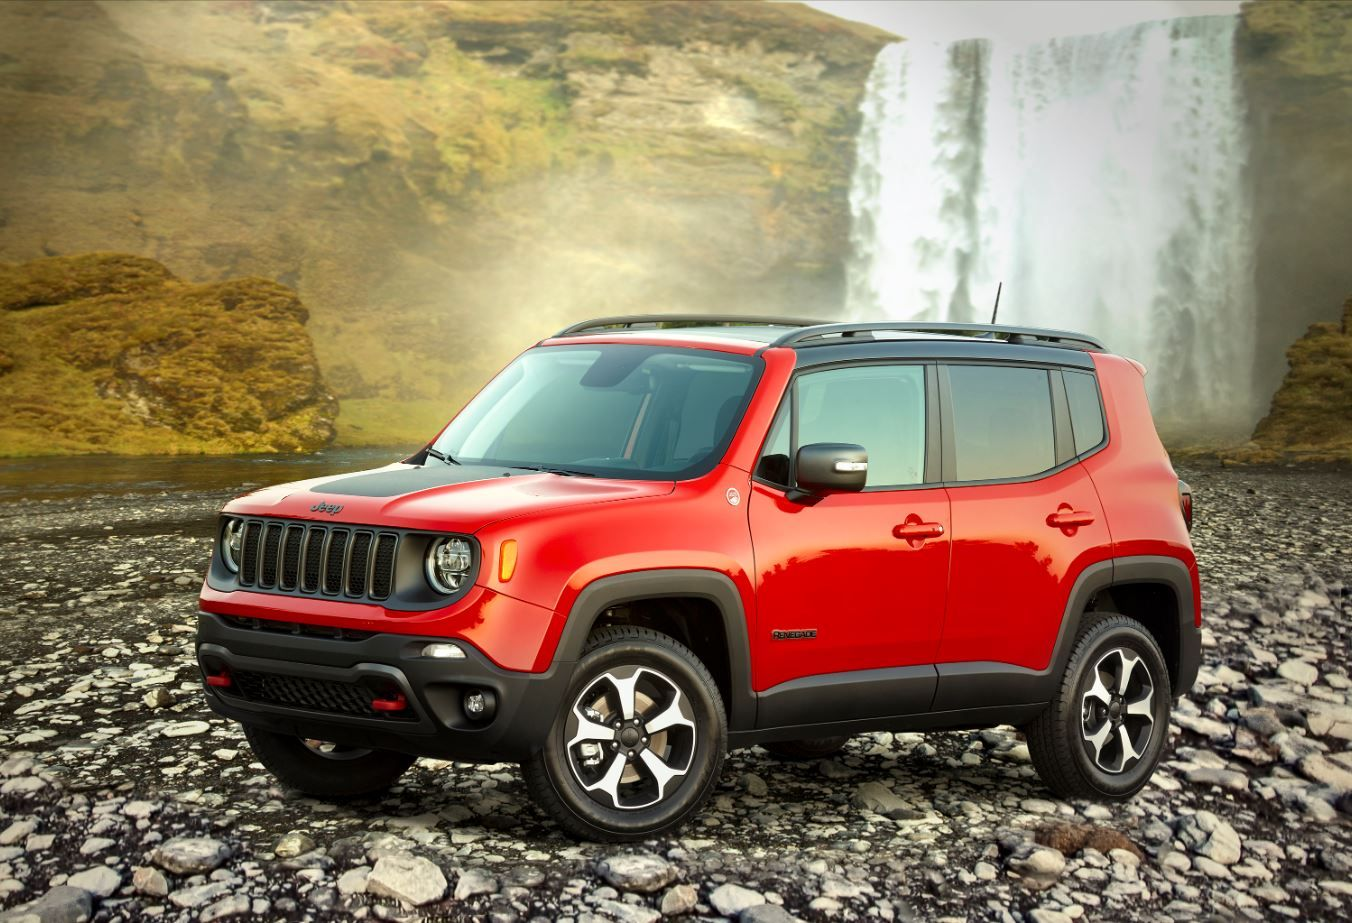 Fiat Chrysler Readies For Launch Of Jeep Renegade Phev In 2020 Jeep Renegade Jeep Renegade Price Jeep Renegade Trailhawk